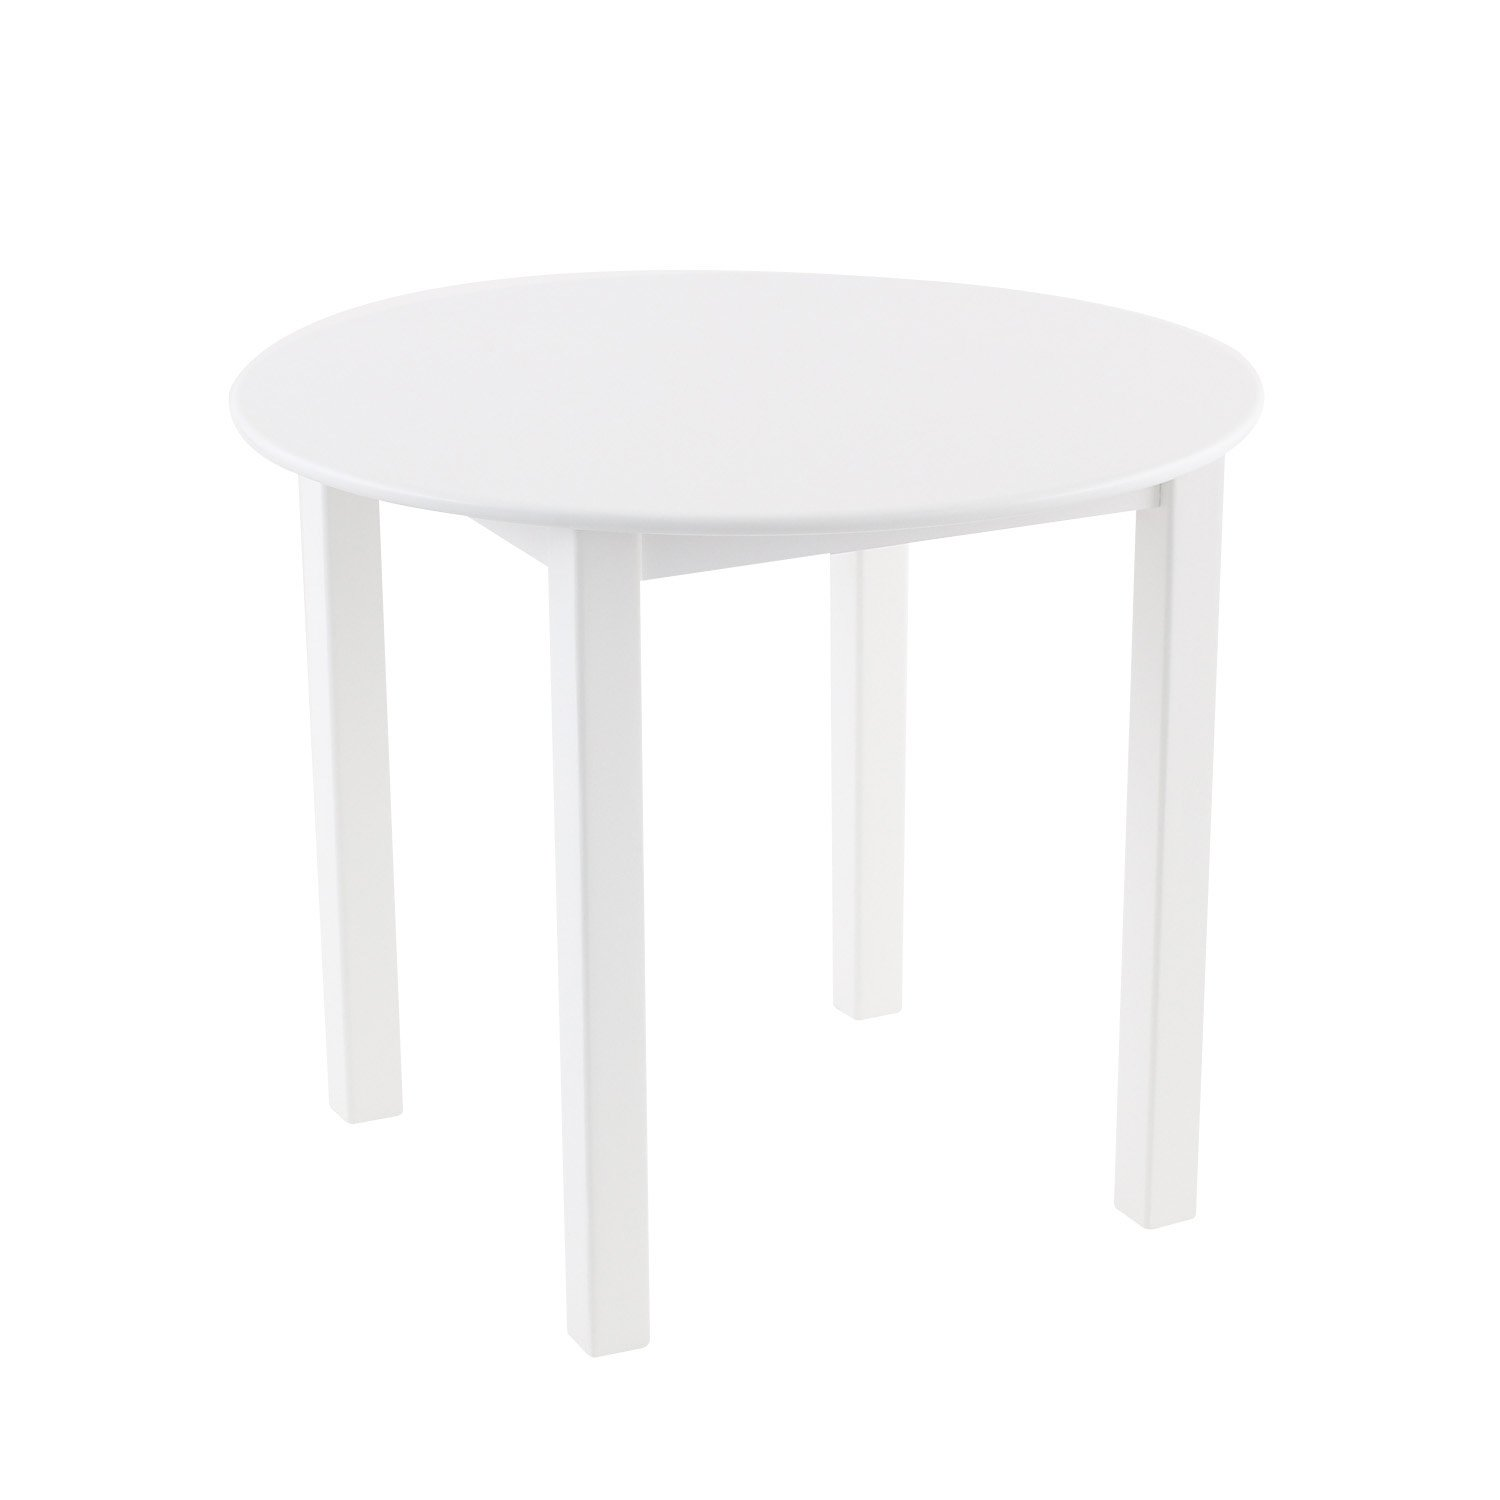 Max & Lily Natural Wood Kid and Toddler Round Table, White by Max & Lily (Image #1)